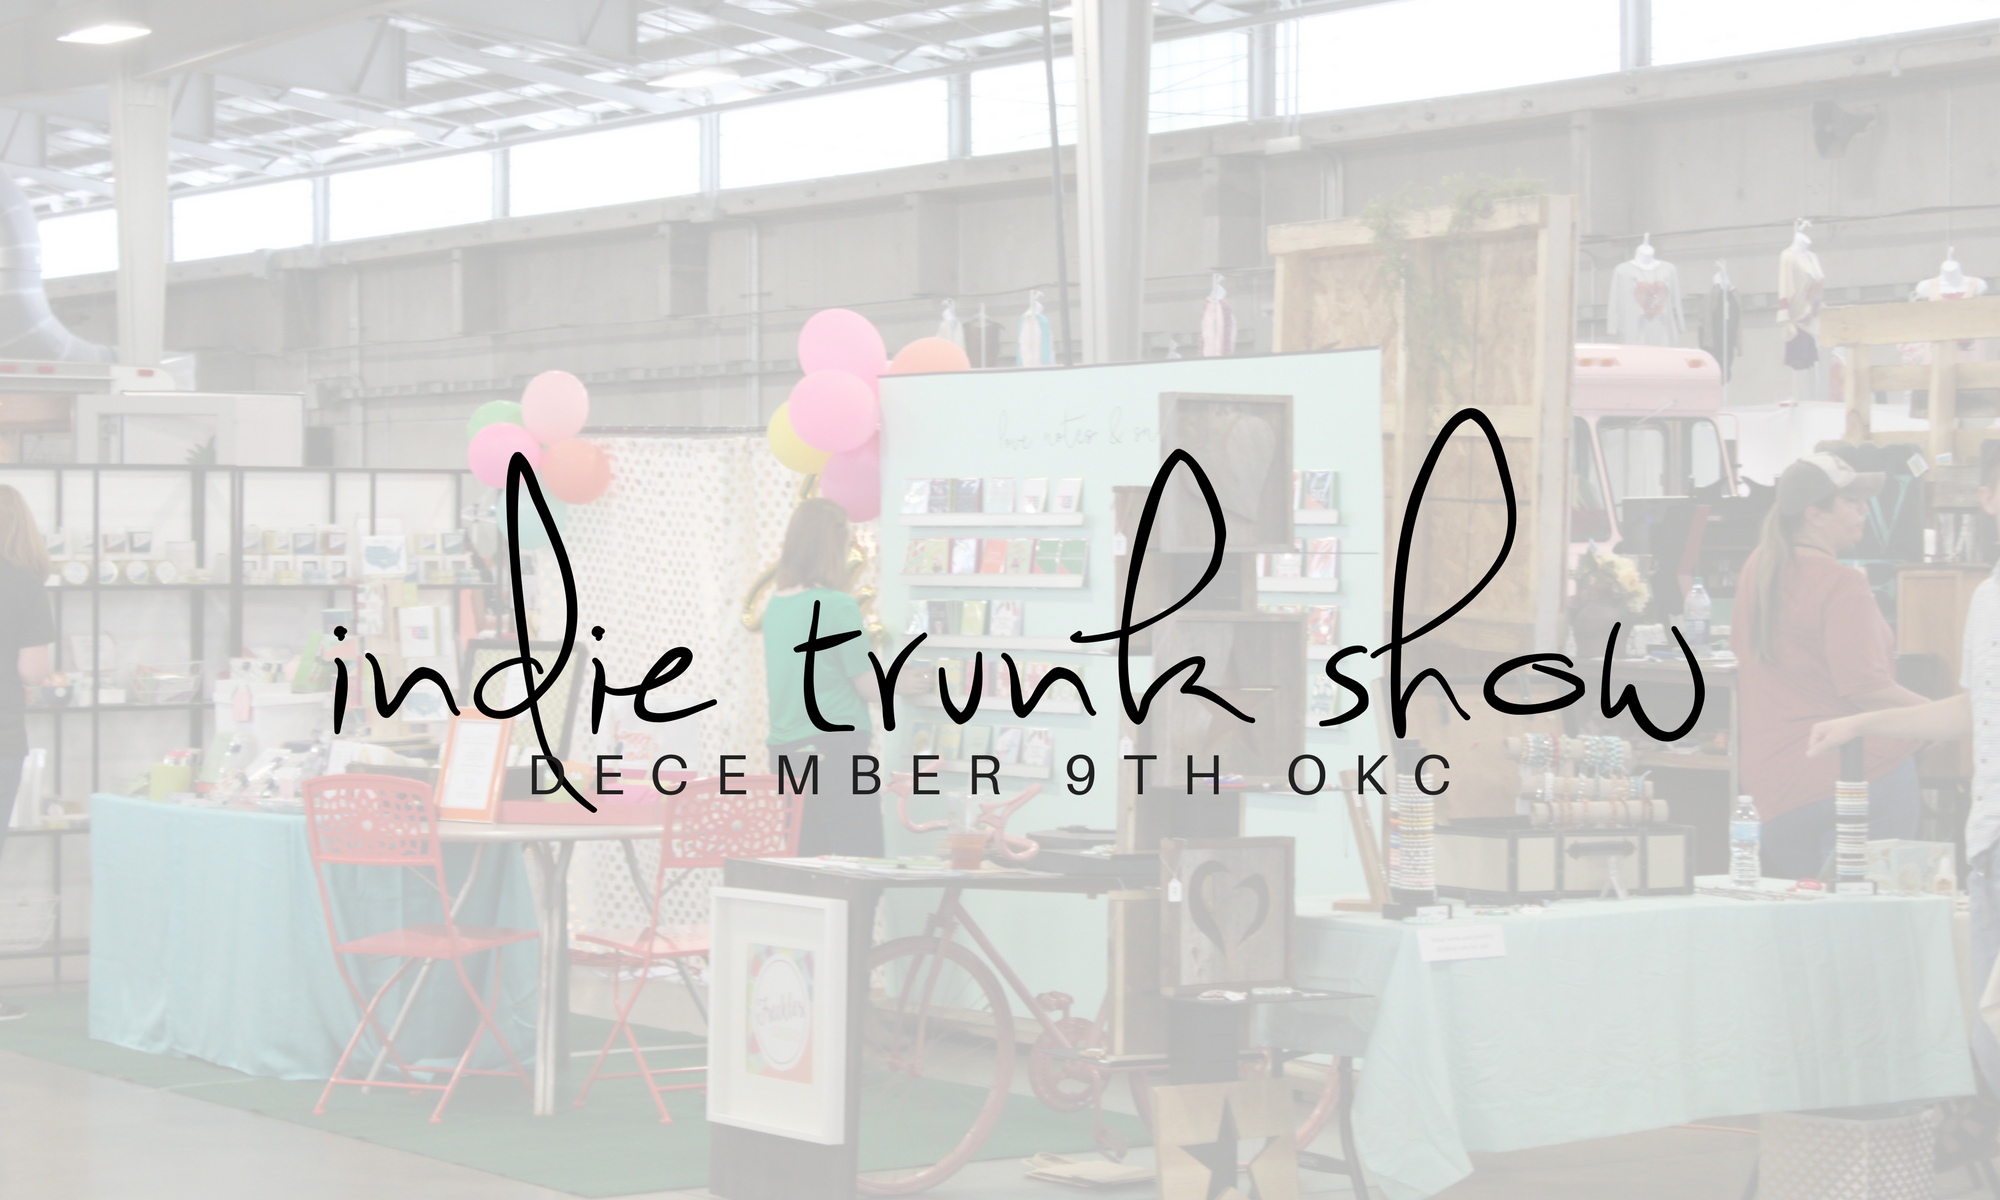 Indie Trunk Show